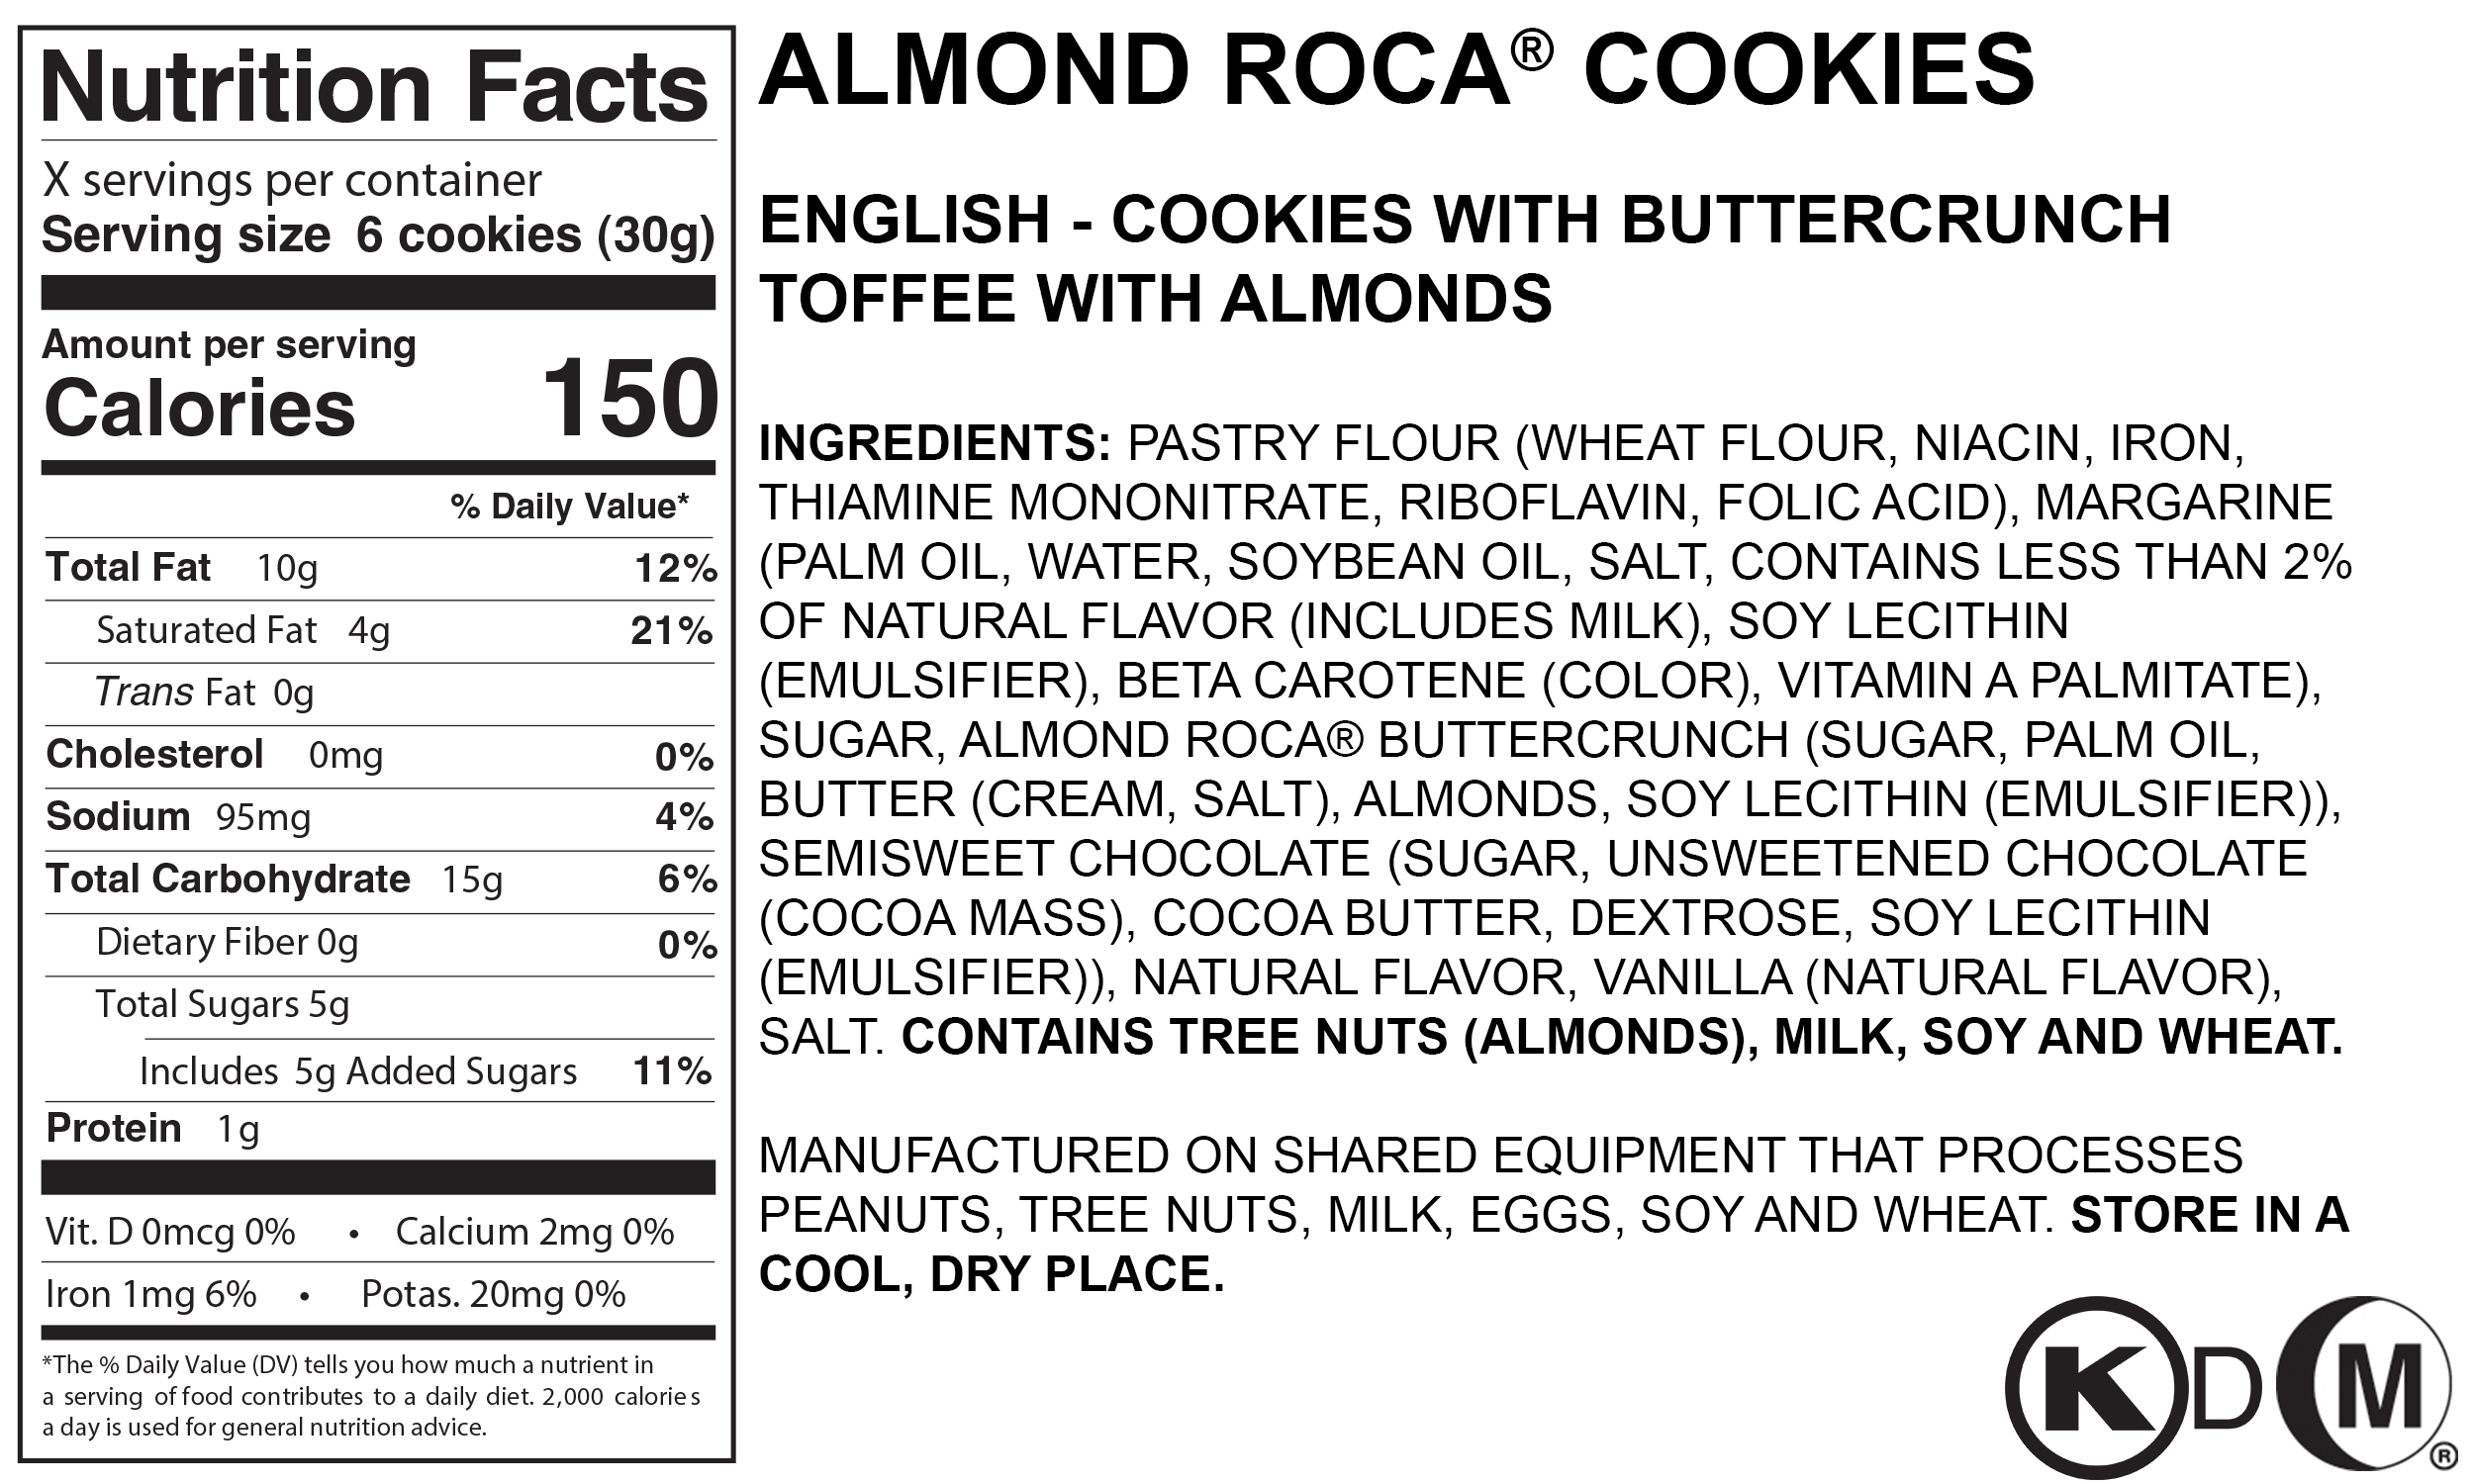 Almond ROCA® Cookies - Serving SIze 6 Cookies